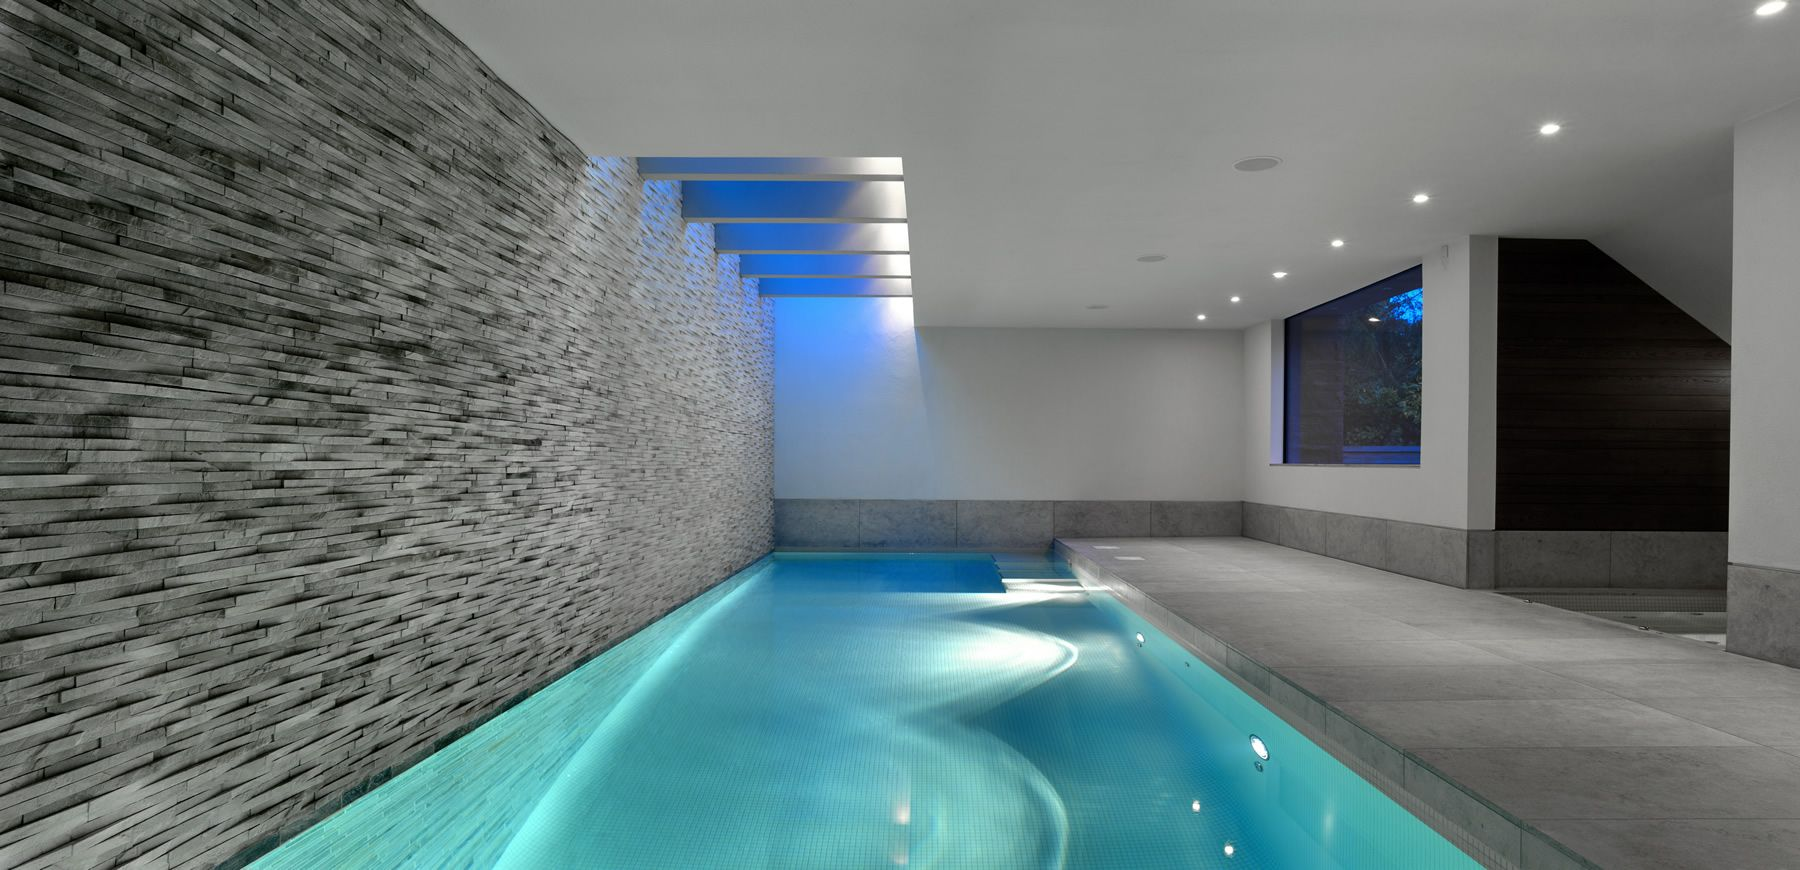 Astounding indoor swimming pool design image 381 50 for Inground indoor pool designs